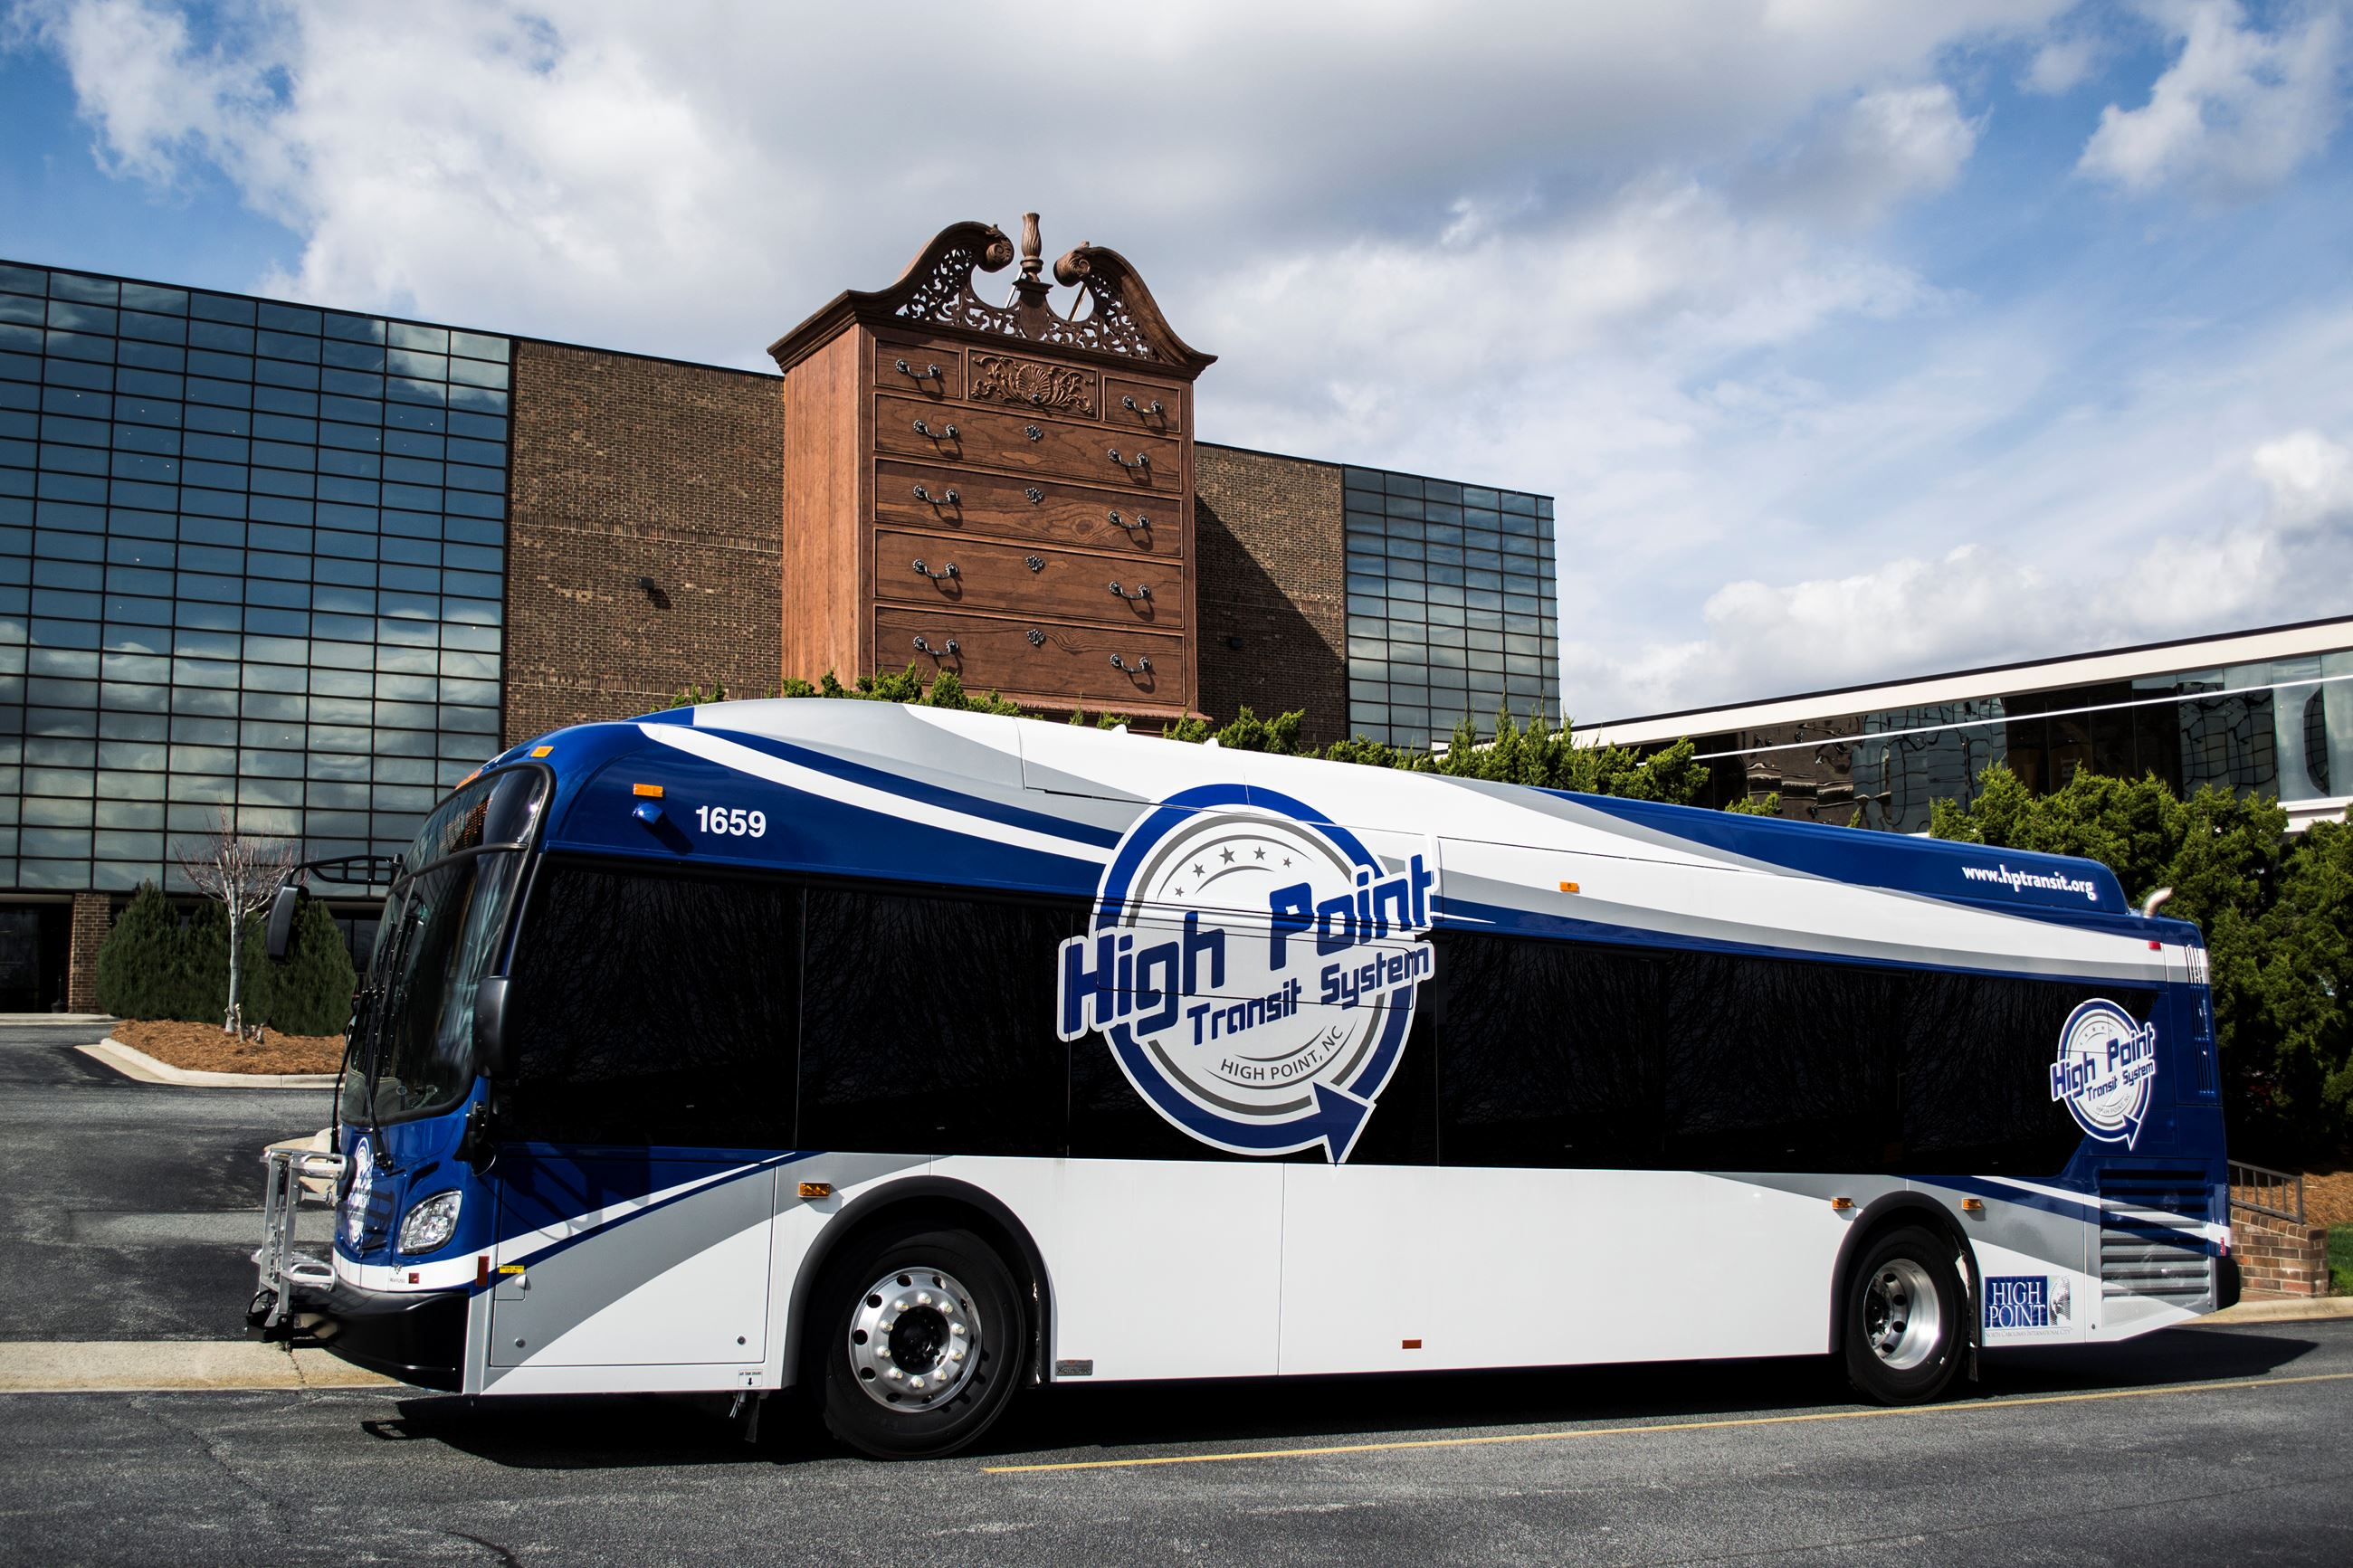 High Point Transit System New Flyer XD35